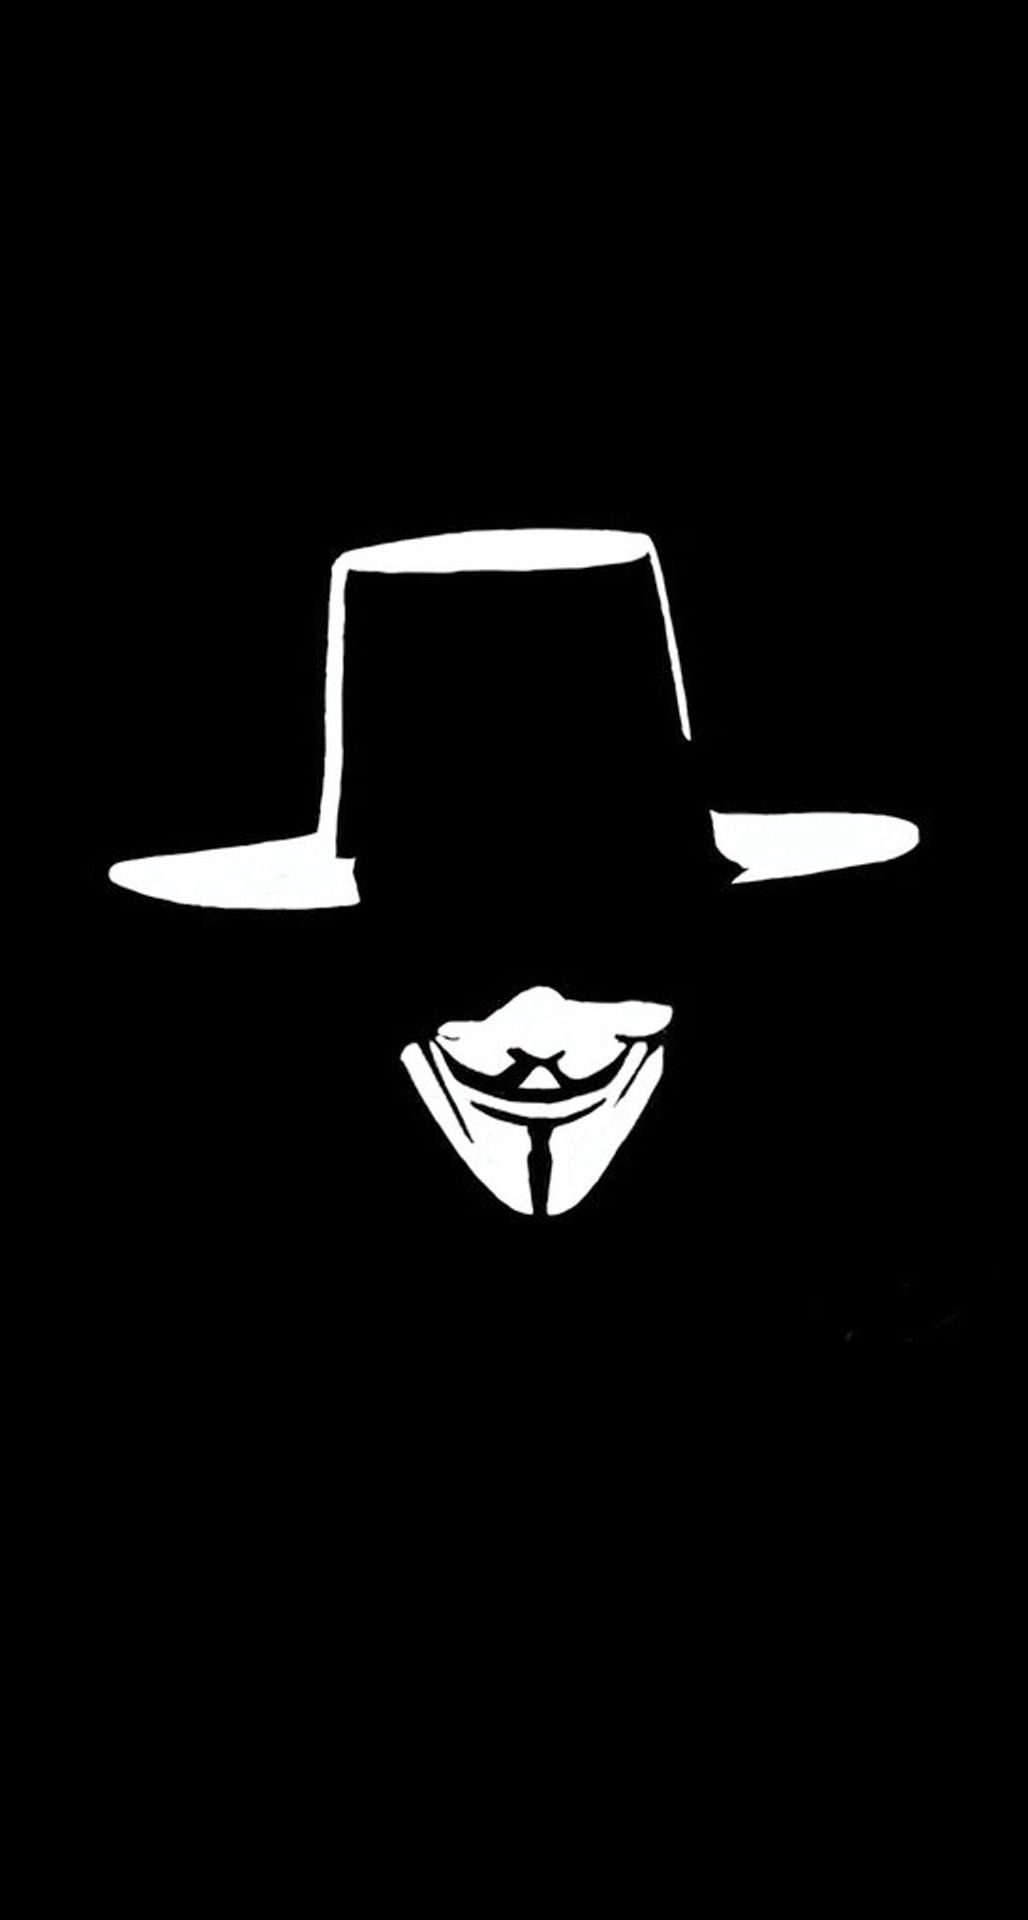 V For Vendetta Hat Face Illustration IPhone 6 Plus HD Wallpaper